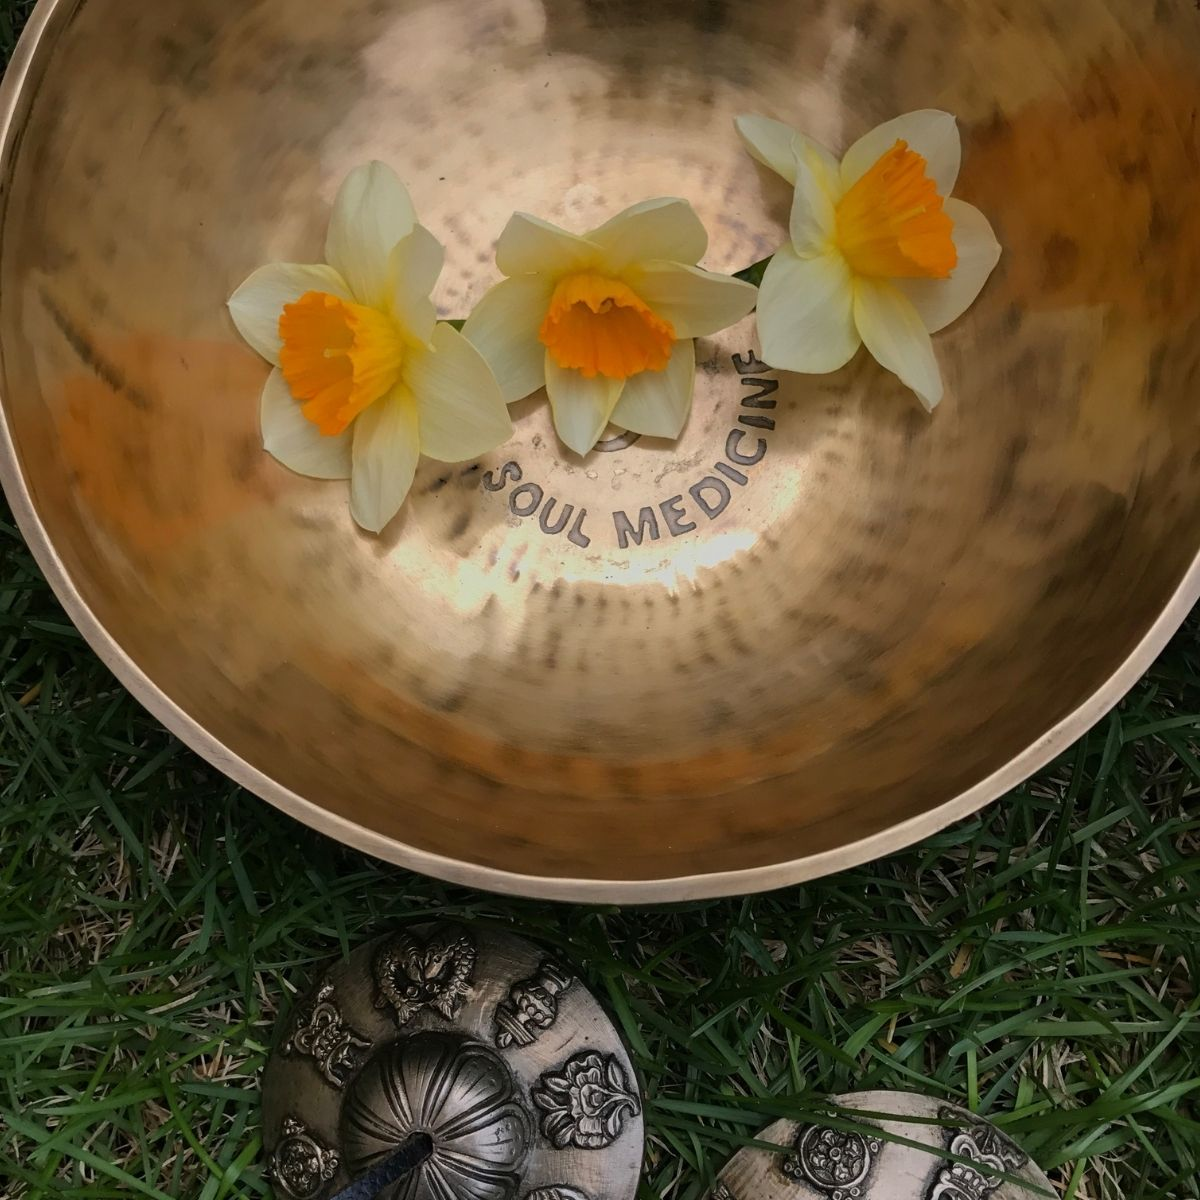 Healing Singing Bowl with Three Daffodils and Tingshas